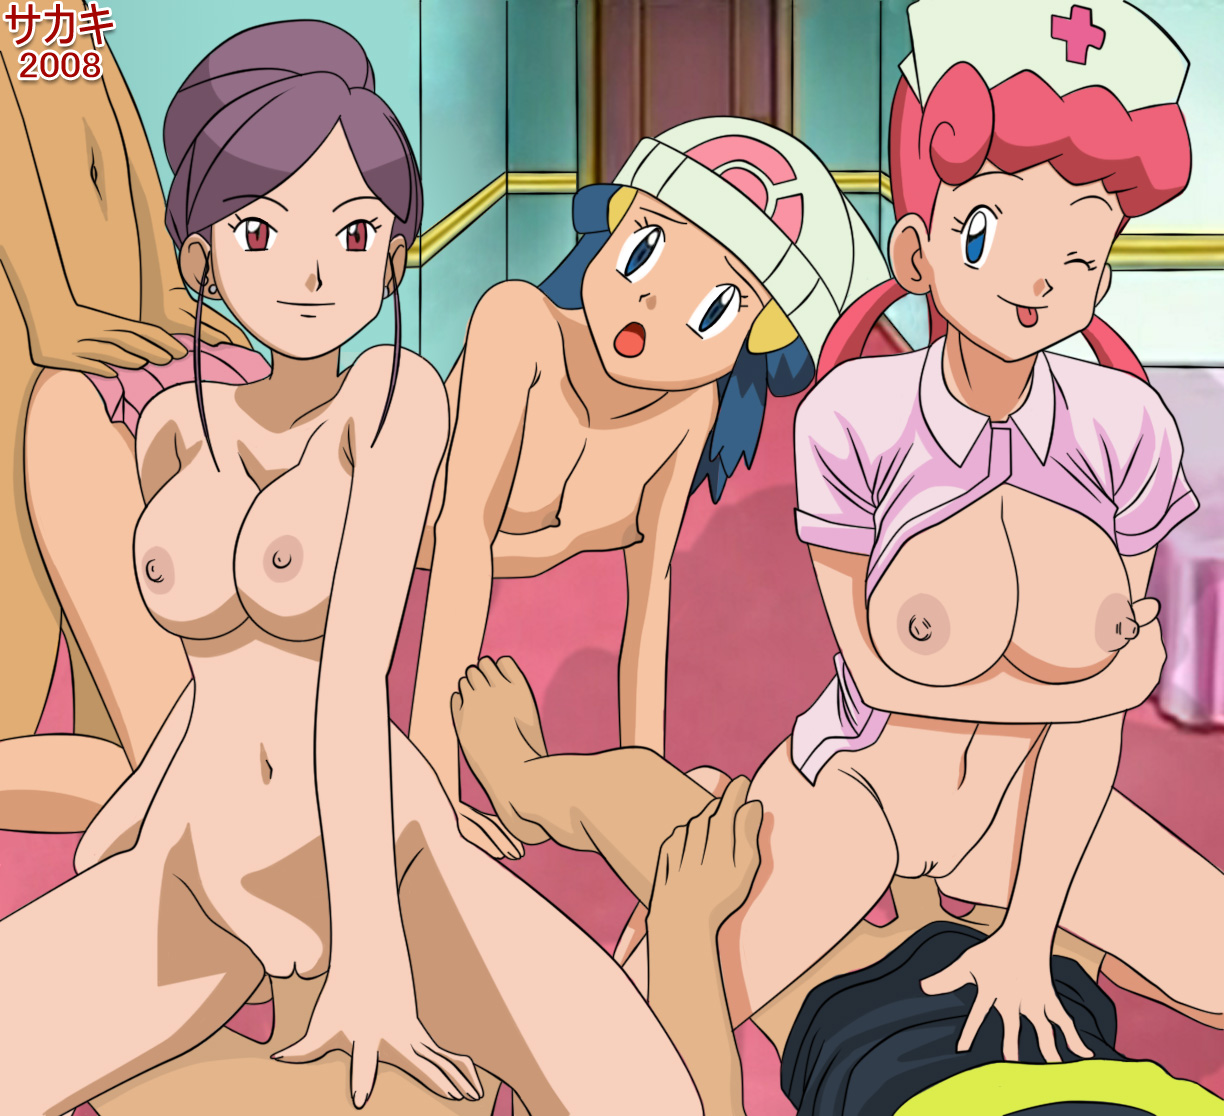 girls nude sexy anime